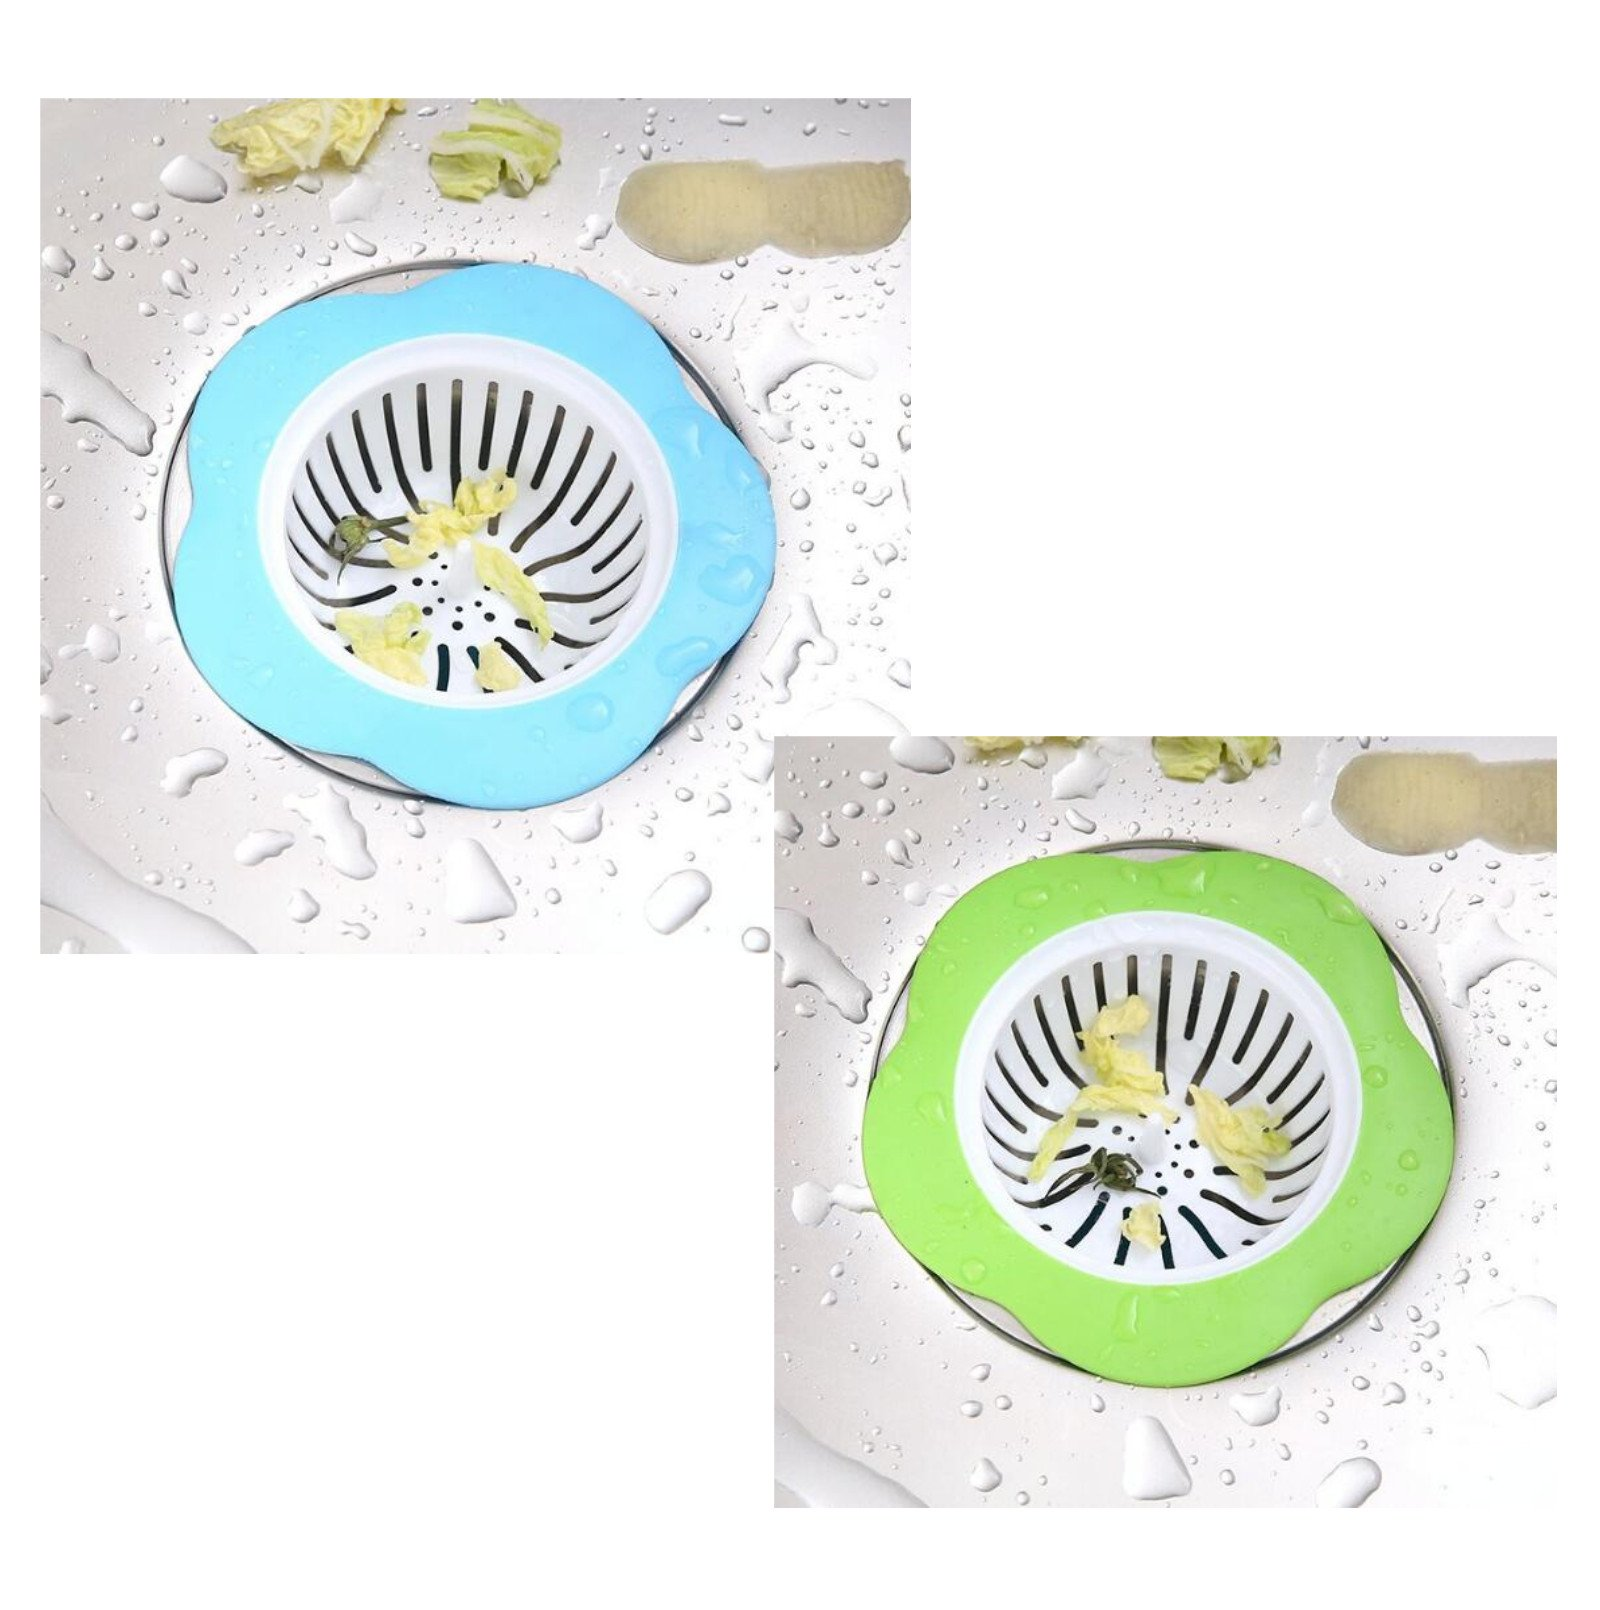 Flower Shaped Silicone Sink Strainer,Large Wide Rim 4.33'' Diameter, Fits Most Kitchen, Bathroom, Laundry Pool/2 PCS